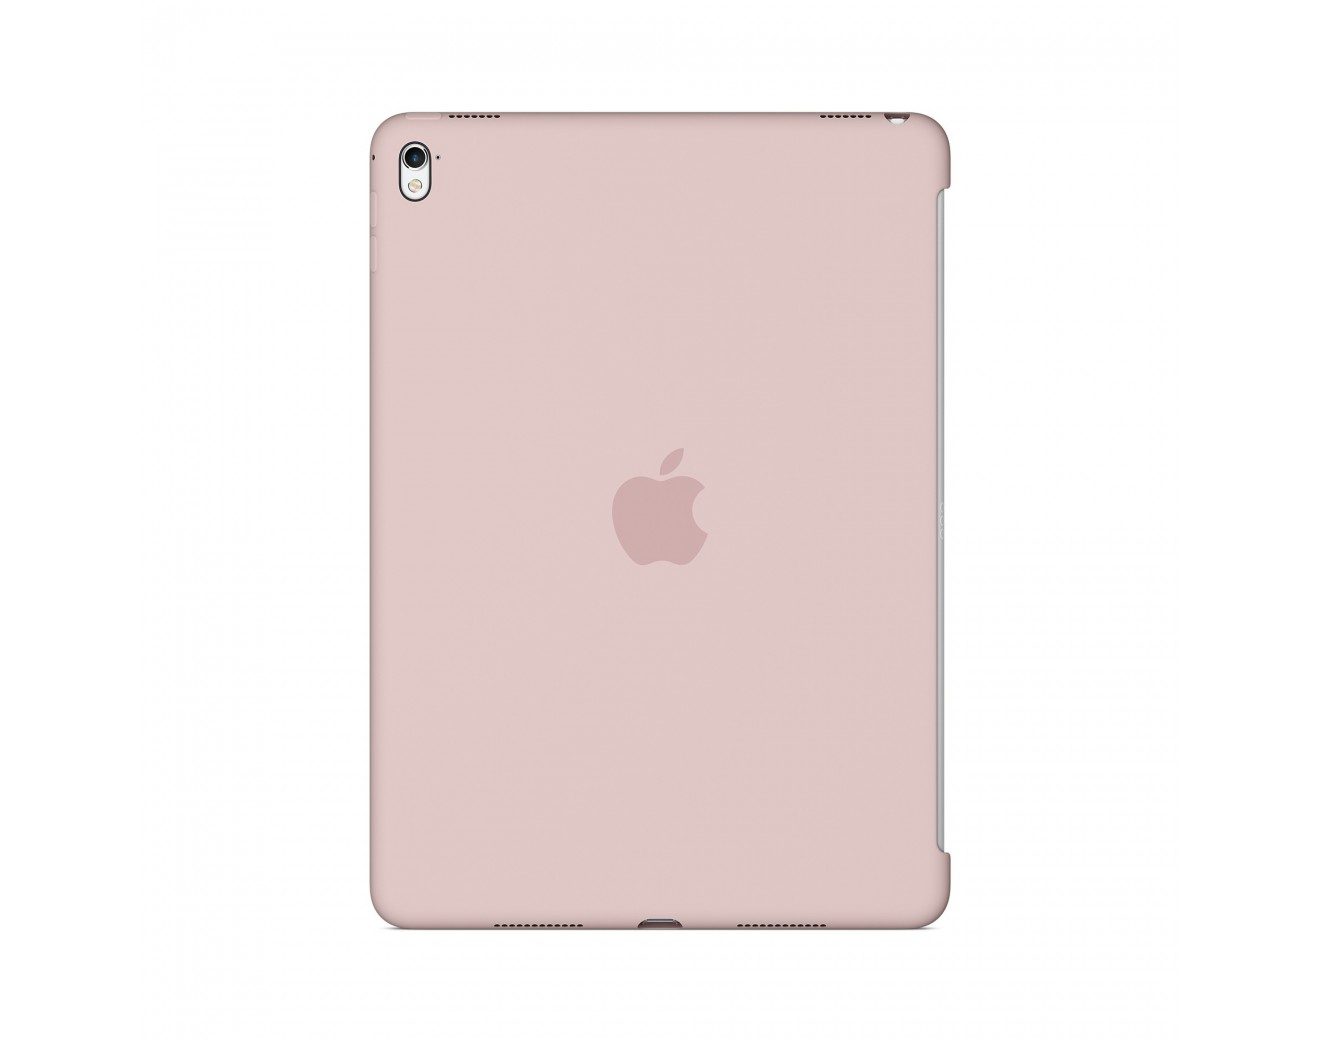 Apple Silicone Case iPad Pro 9.7 - Pink Sand